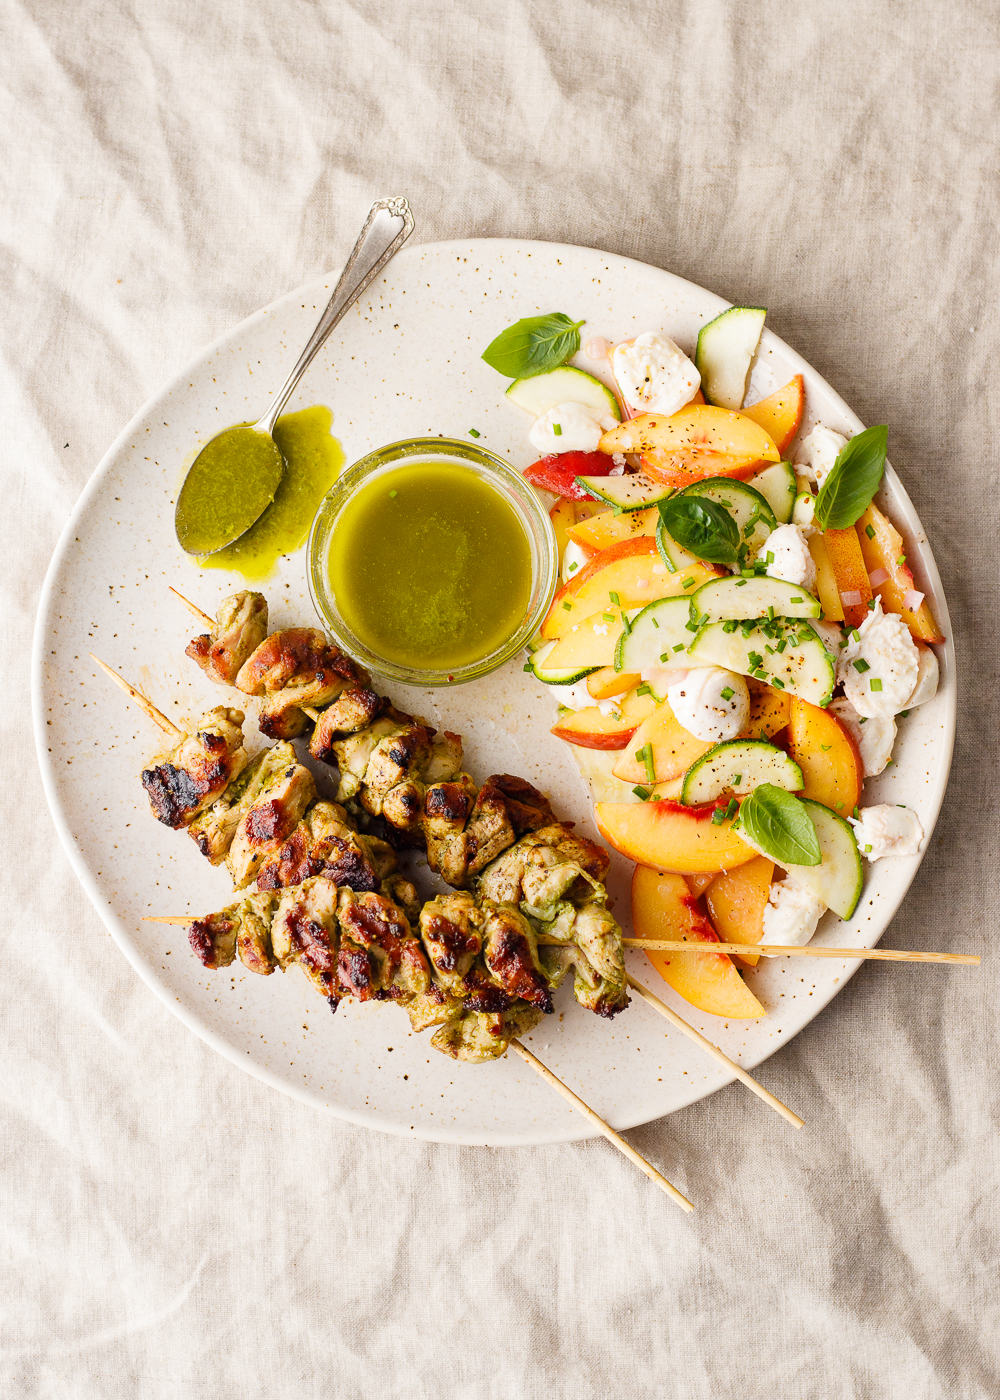 grilled chicken with peach salad 2 (1 of 1).jpg